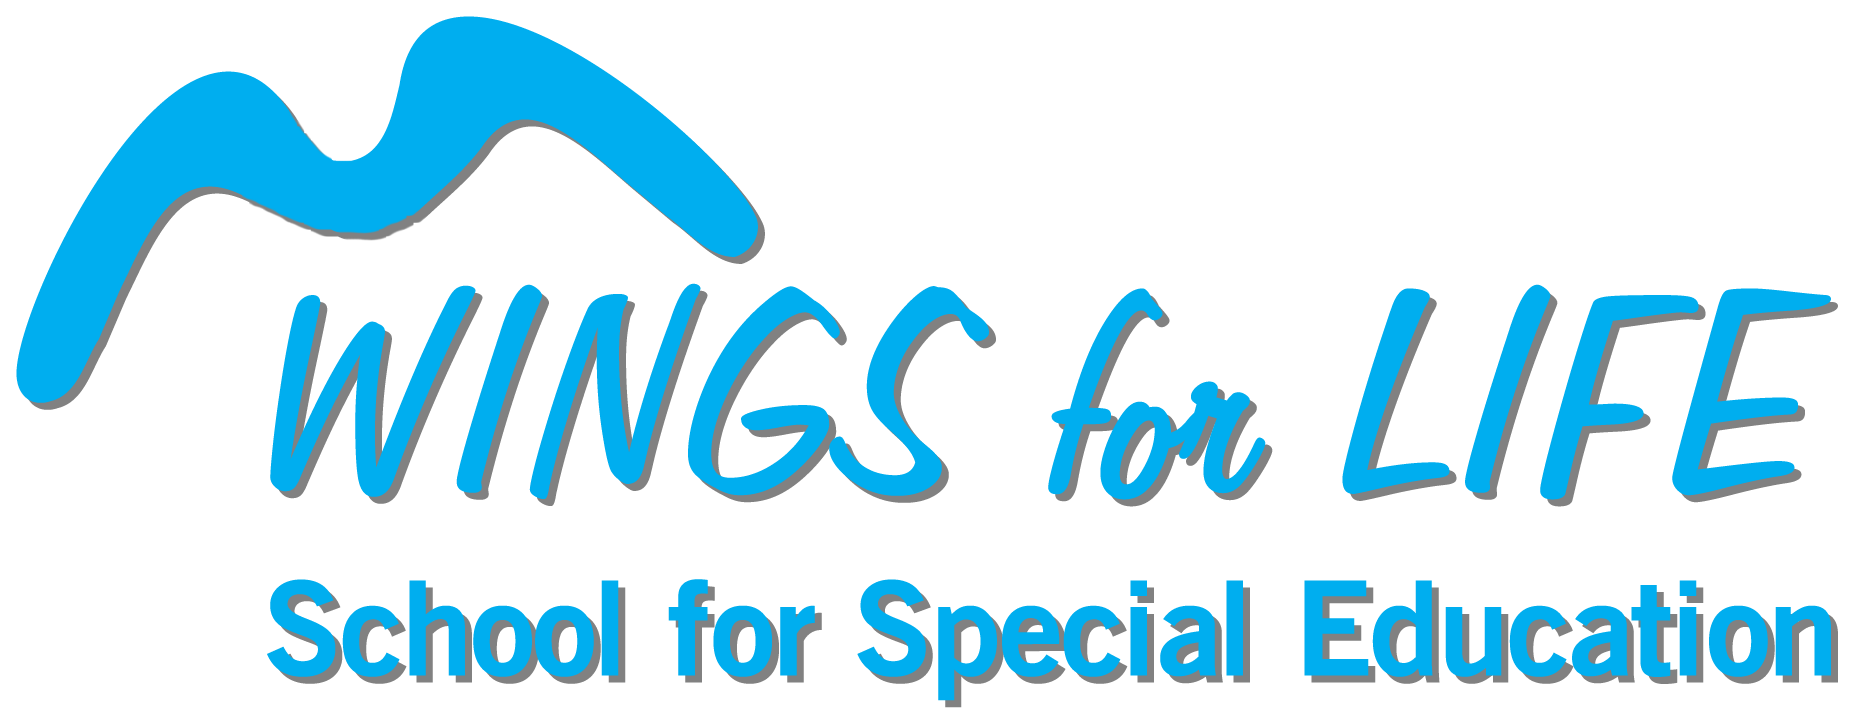 Wings For Life School For Special Education